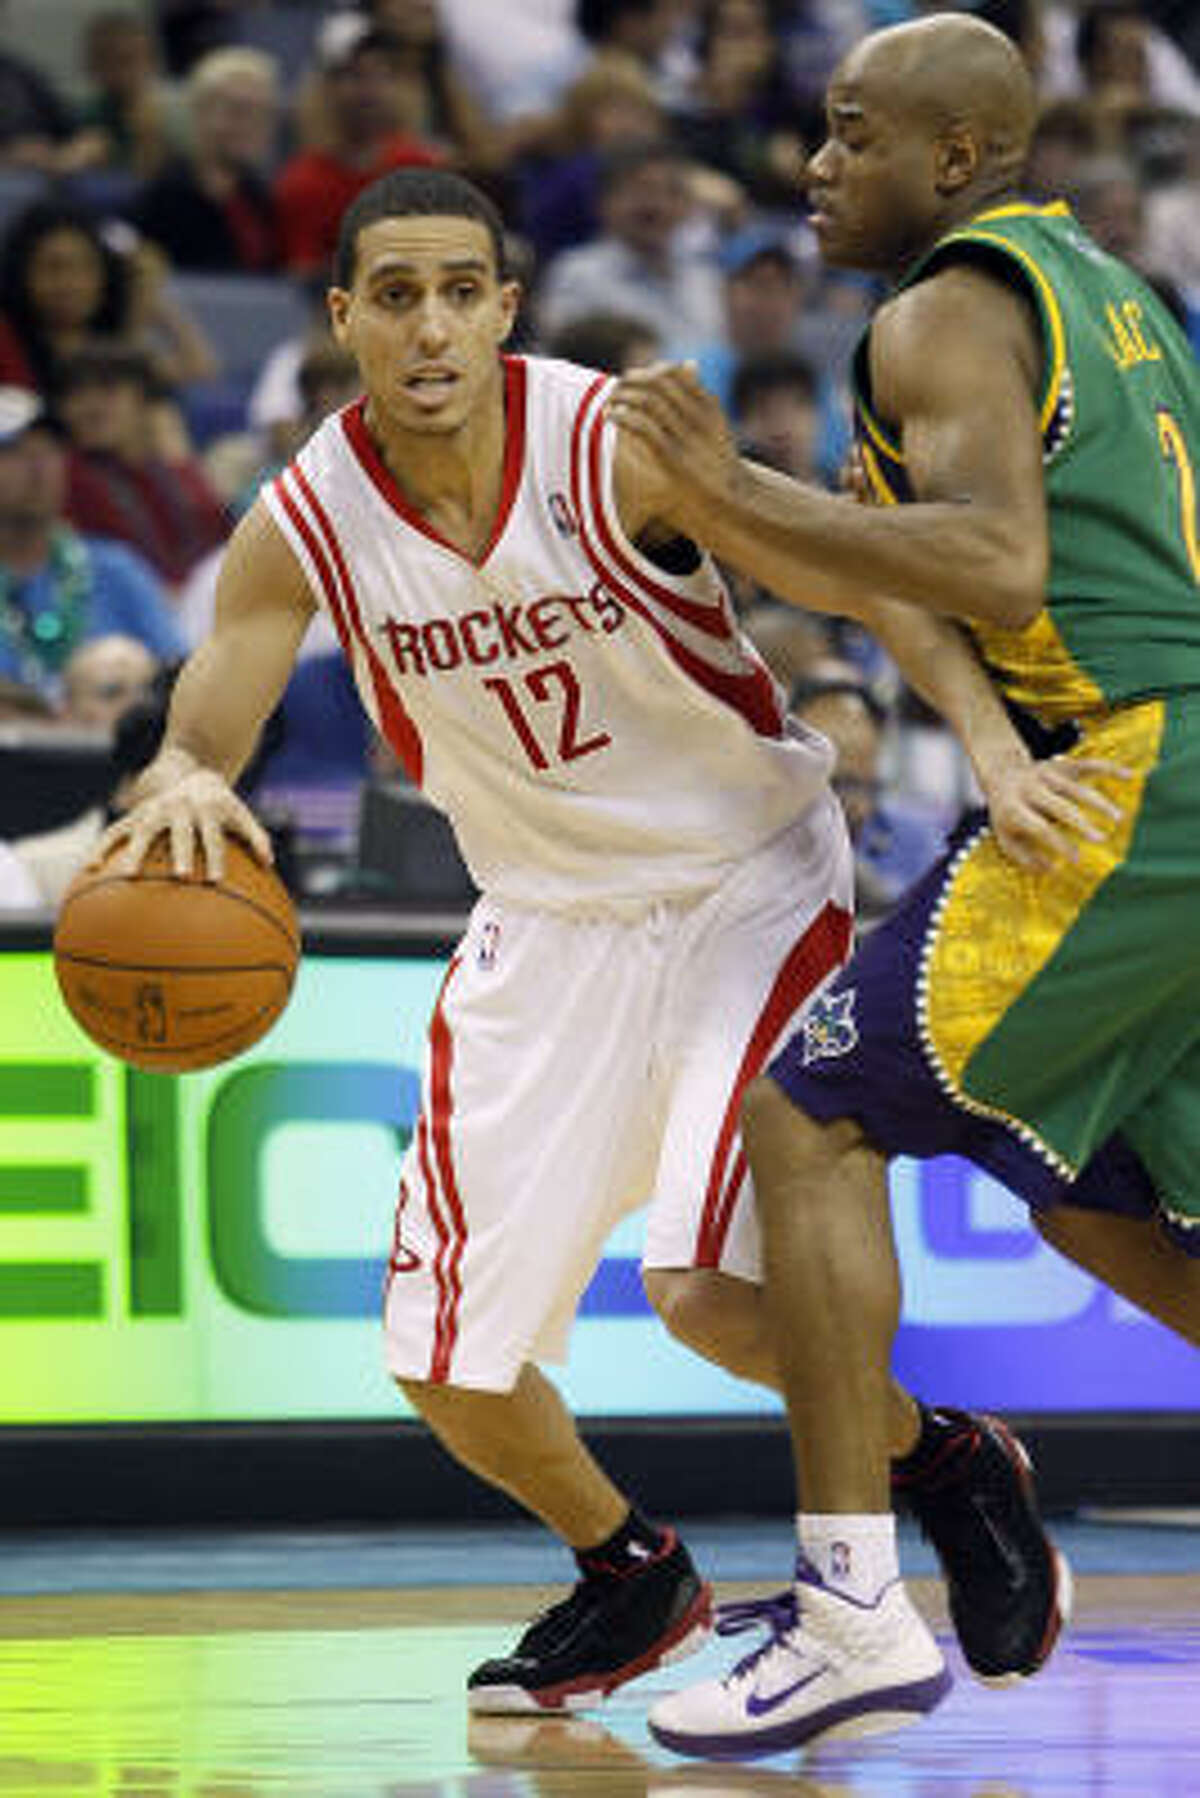 Rockets guard Kevin Martin (12) drives to the basket around Hornets point guard Jarrett Jack. Martin contributed a game-high 33 points to Houston's victory.